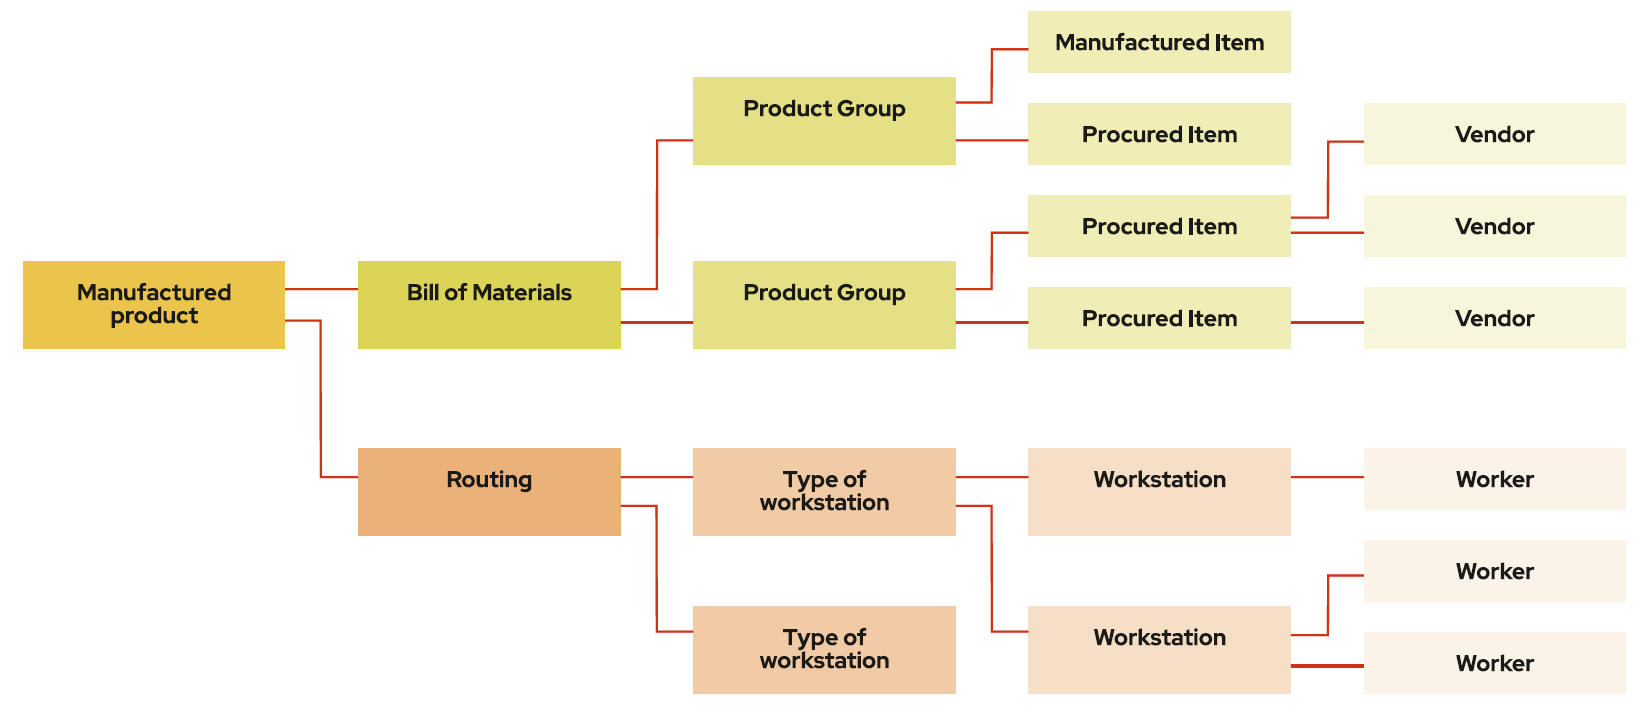 Description of a manufactured product and its relationships